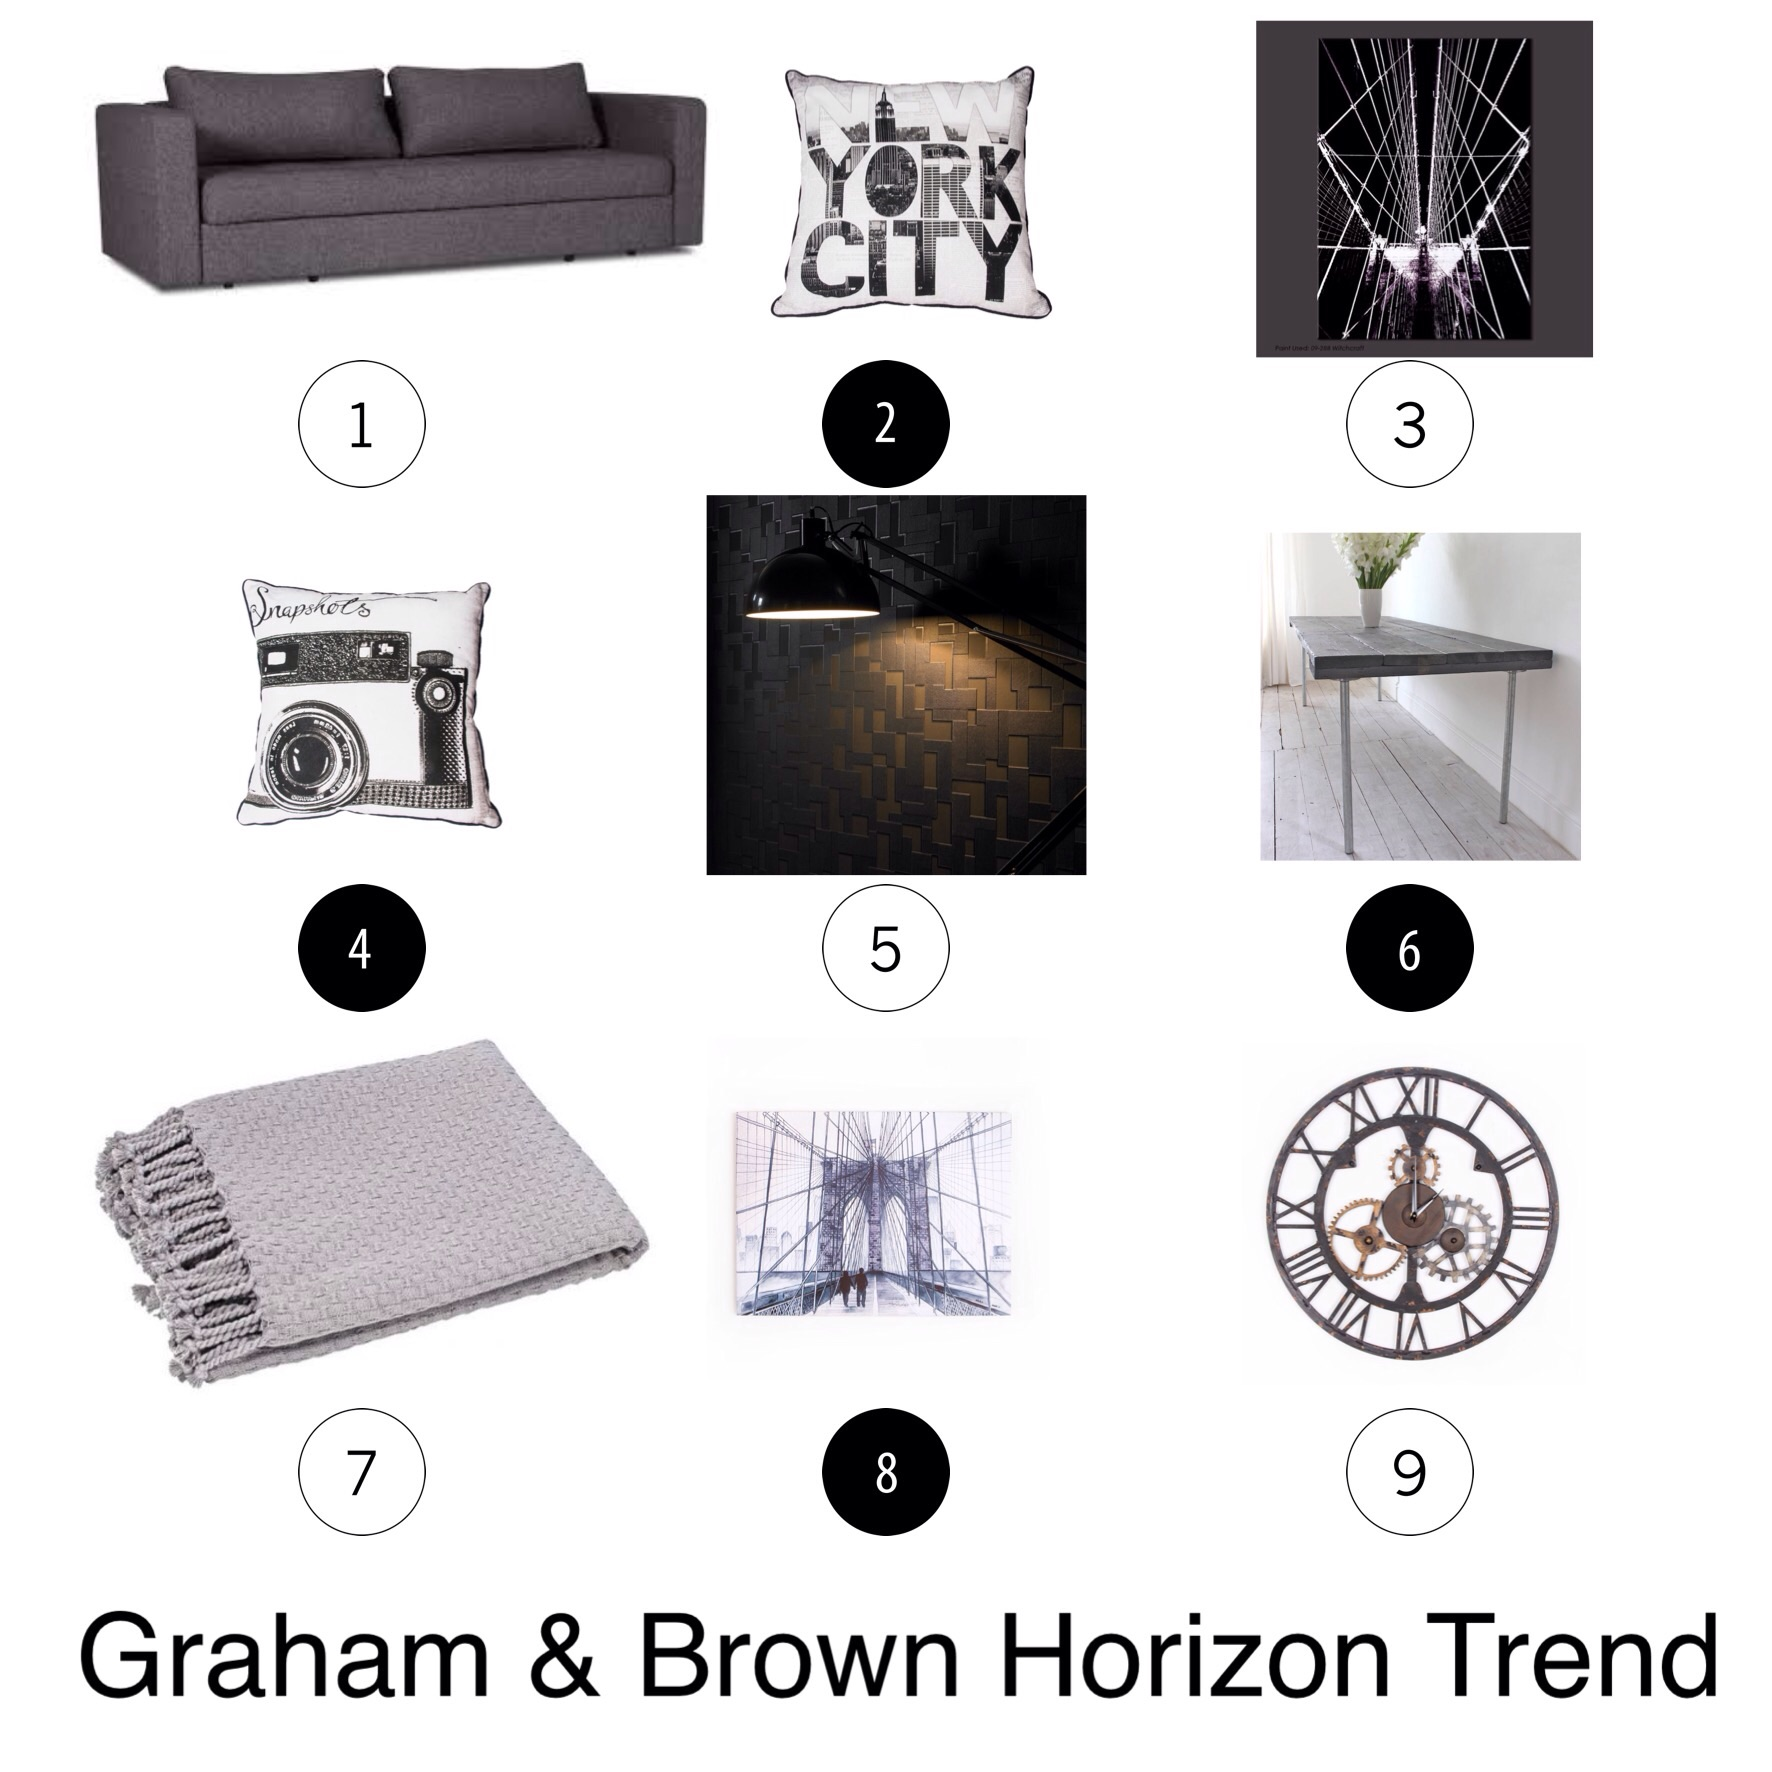 Graham & Brown Horizon Trend